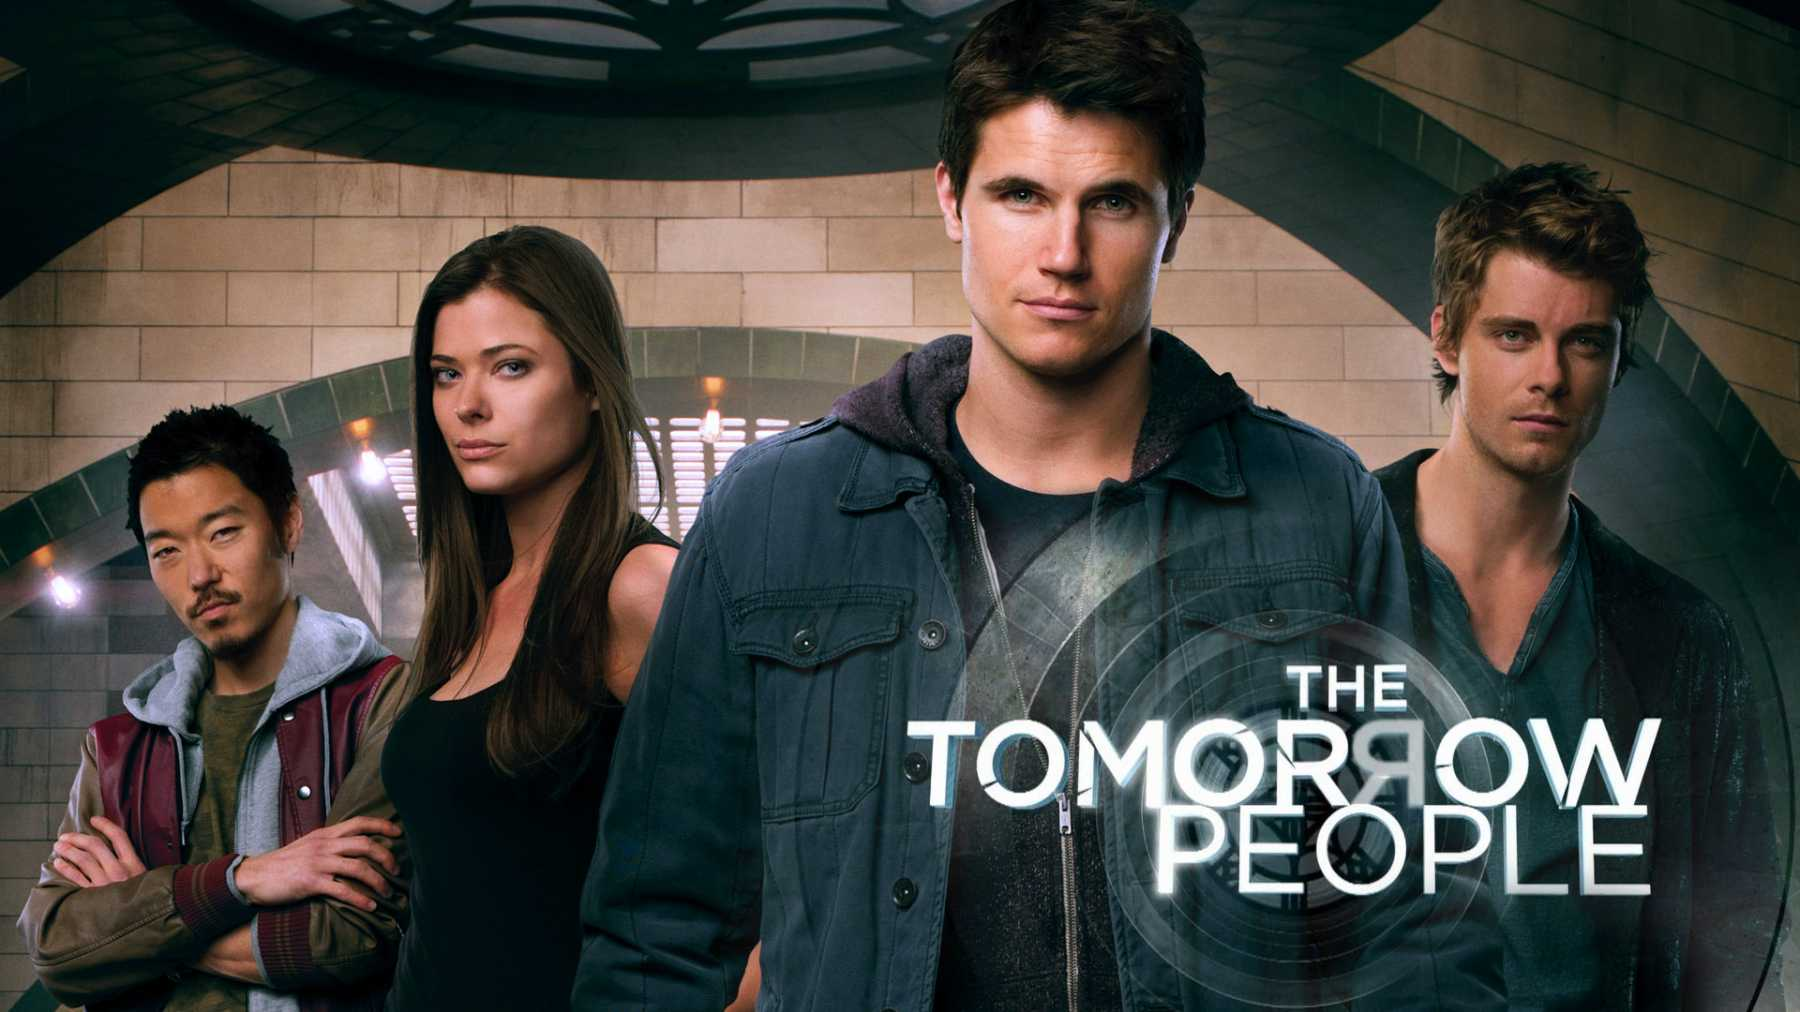 Robbie Amell Gives Us A Glimpse Into The Future Of The Tomorrow People